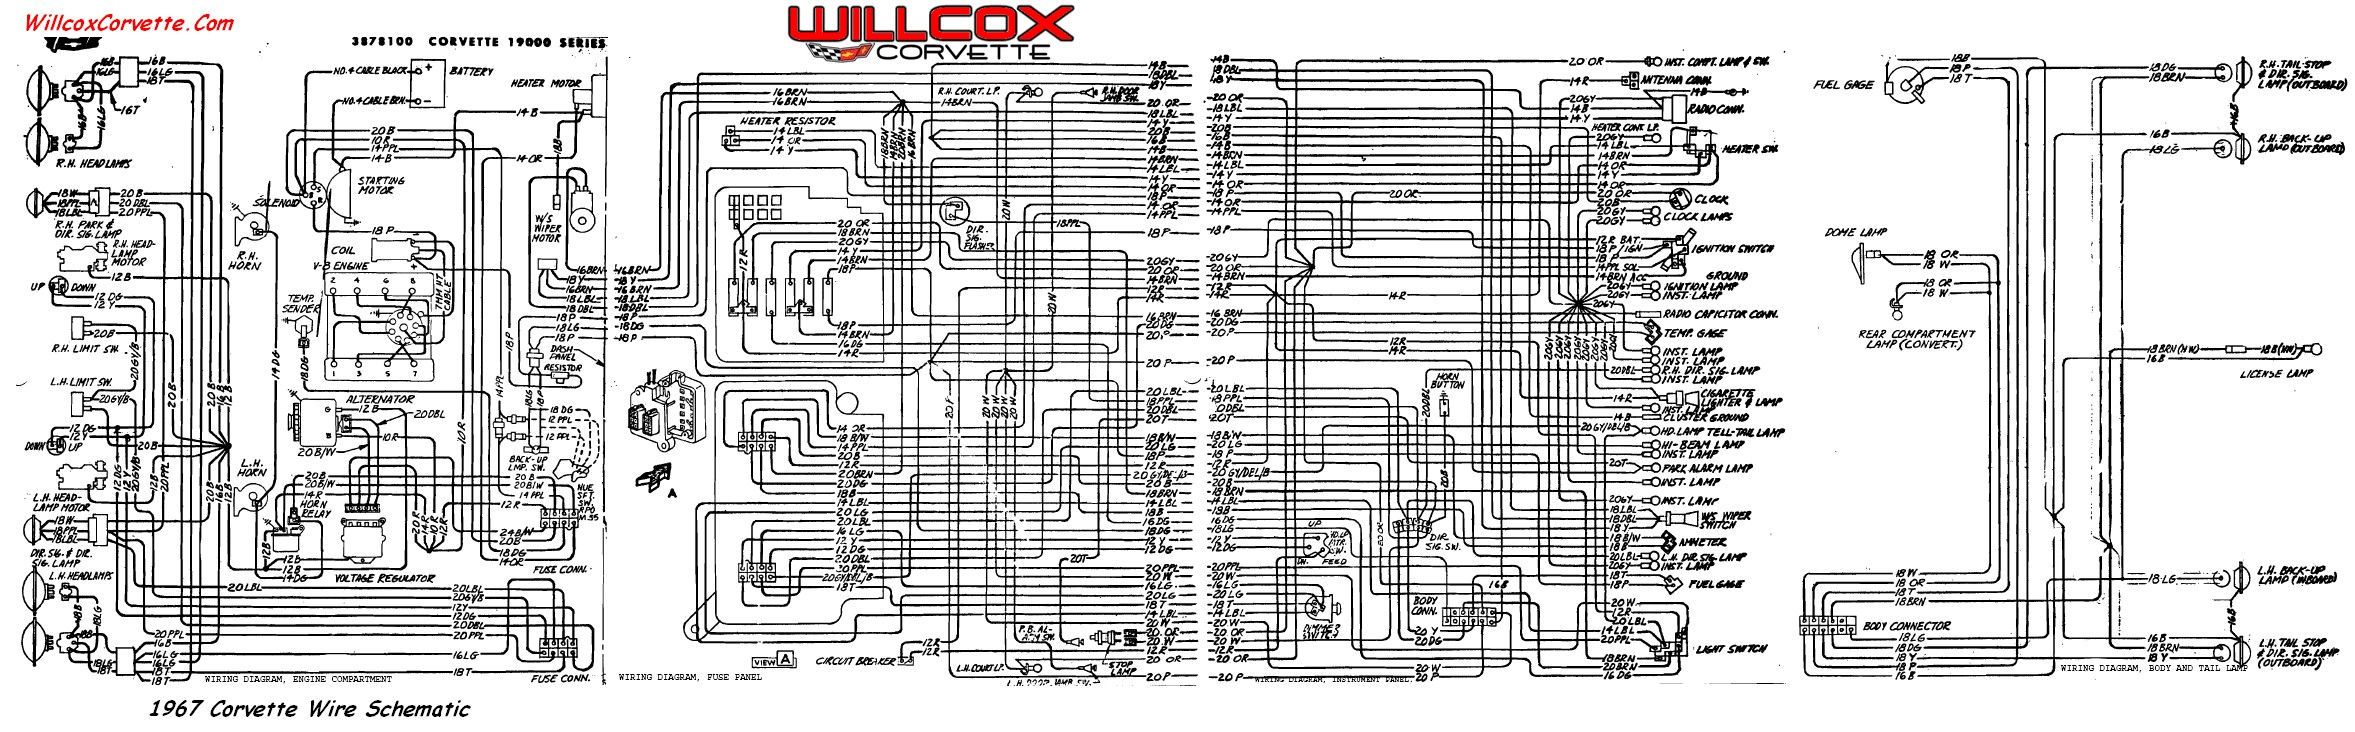 1979 Corvette Wiring Diagram Awesome Wiring Diagram Image